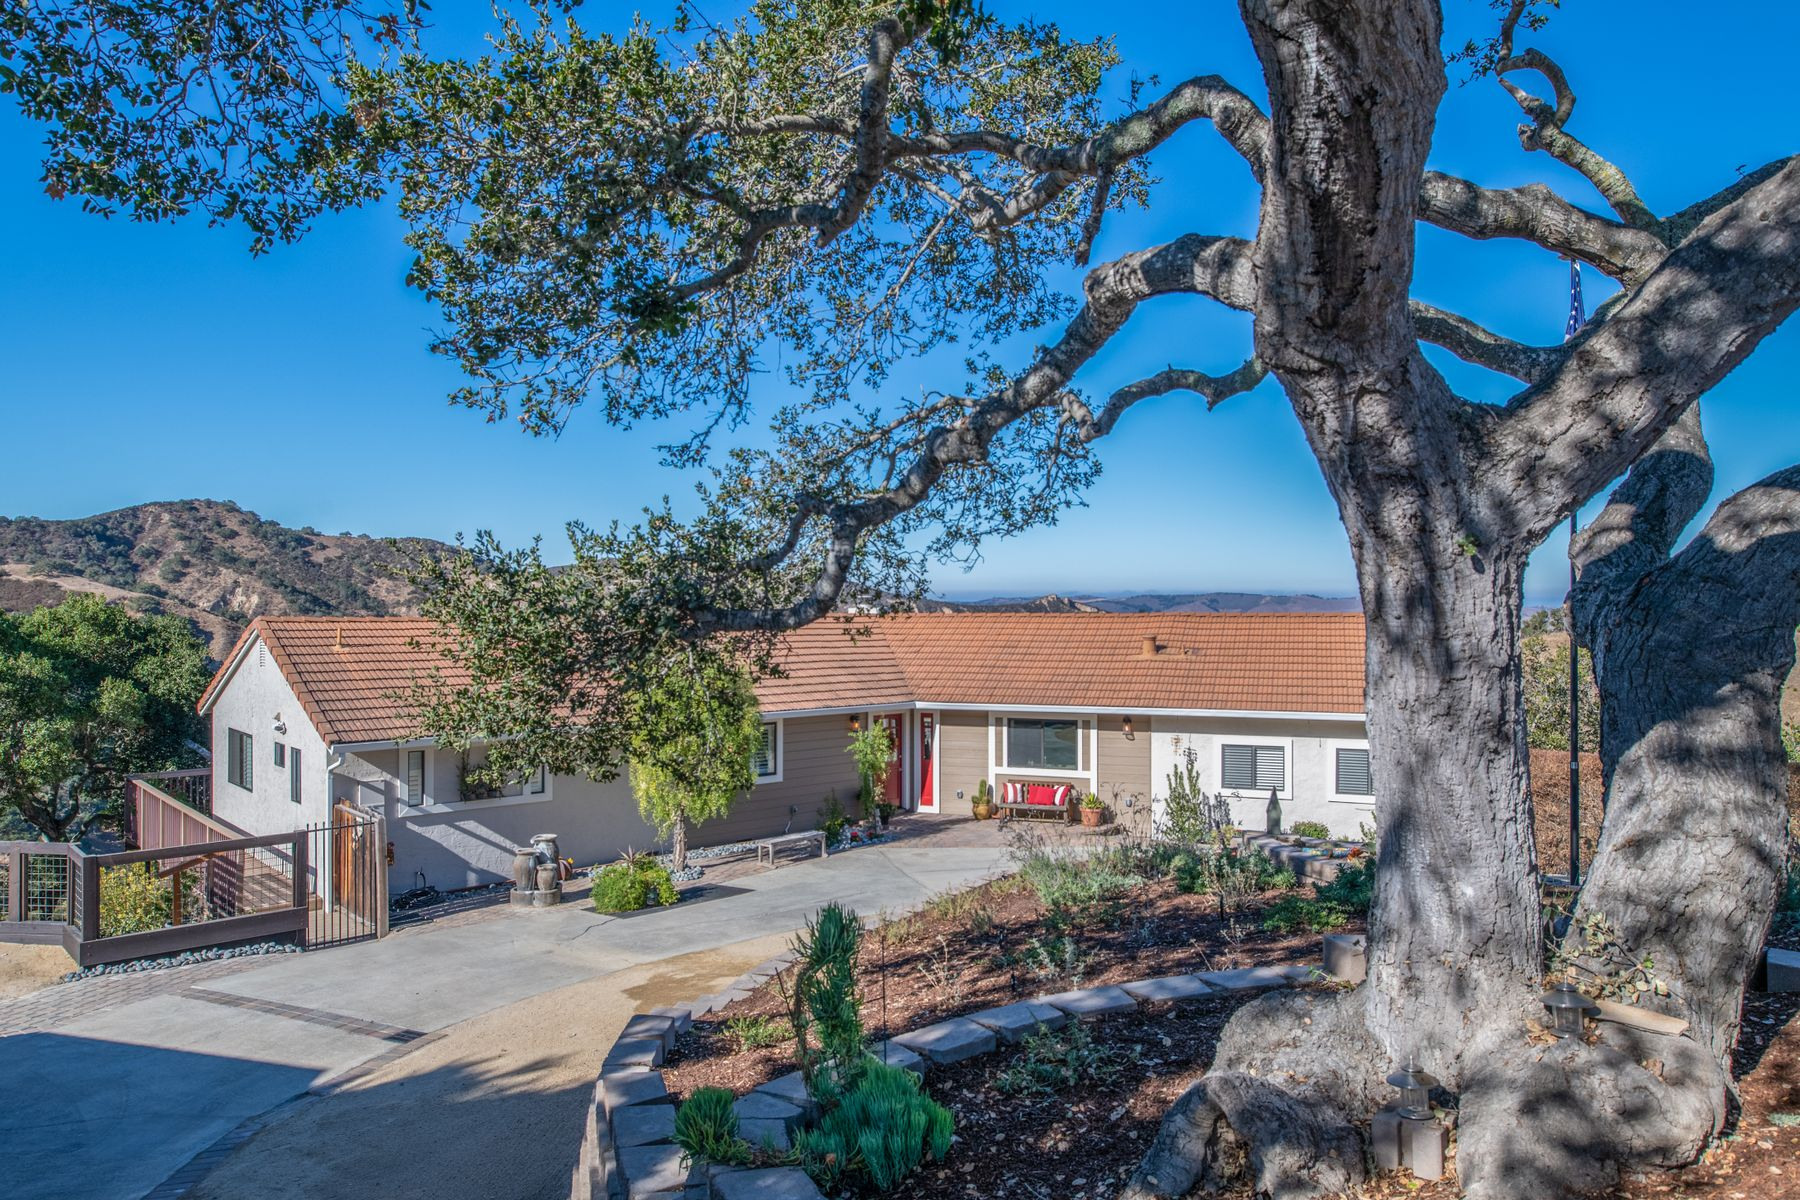 Single Family Homes for Sale at MAGNIFICENT VIEWS OF VALLEY & MOUNTAINS 225 San Benancio Road Salinas, California 93908 United States